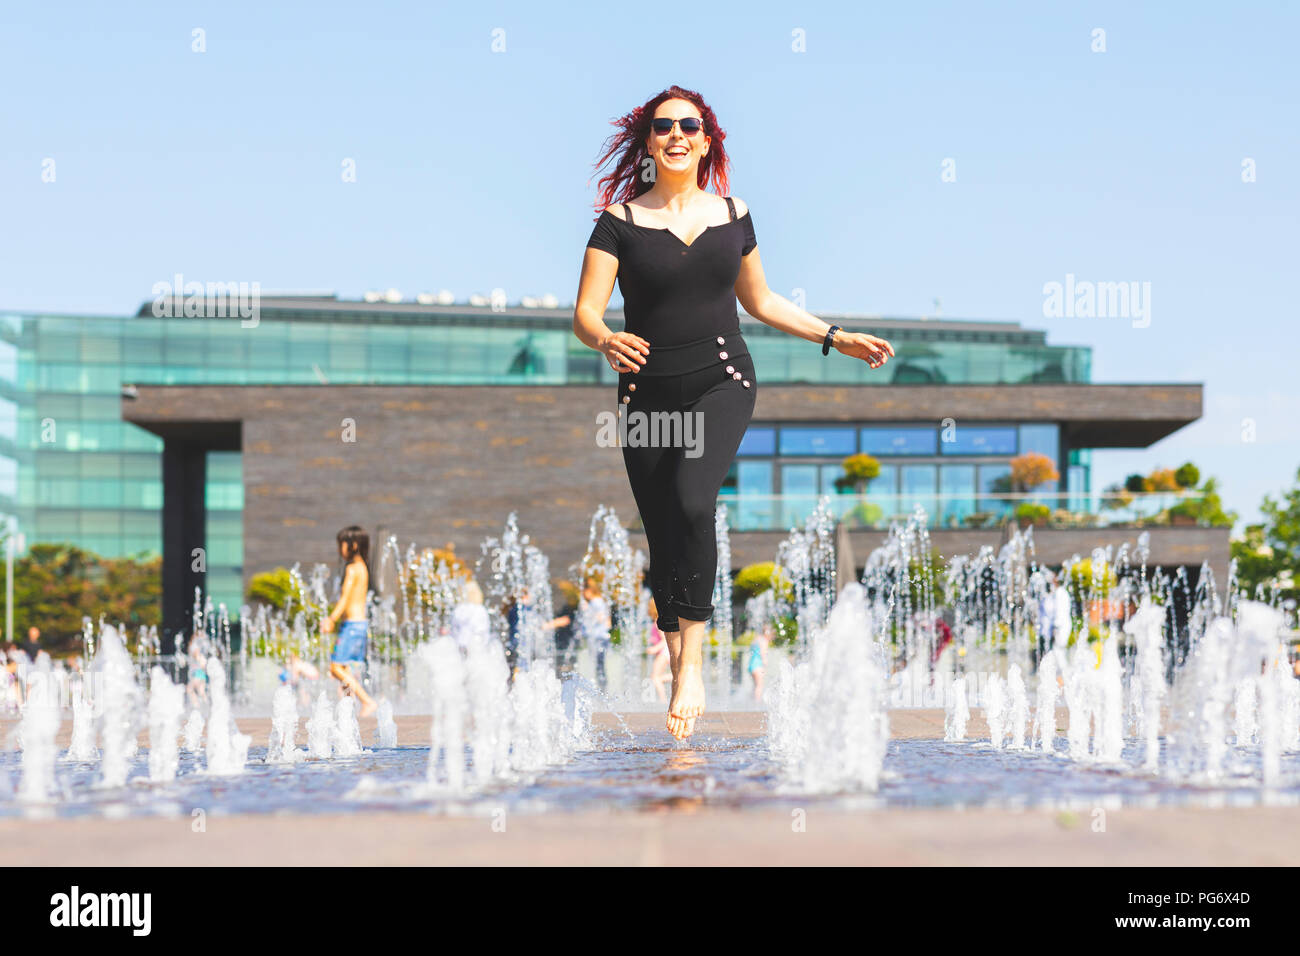 Young woman having fun running through a fountain - Stock Image